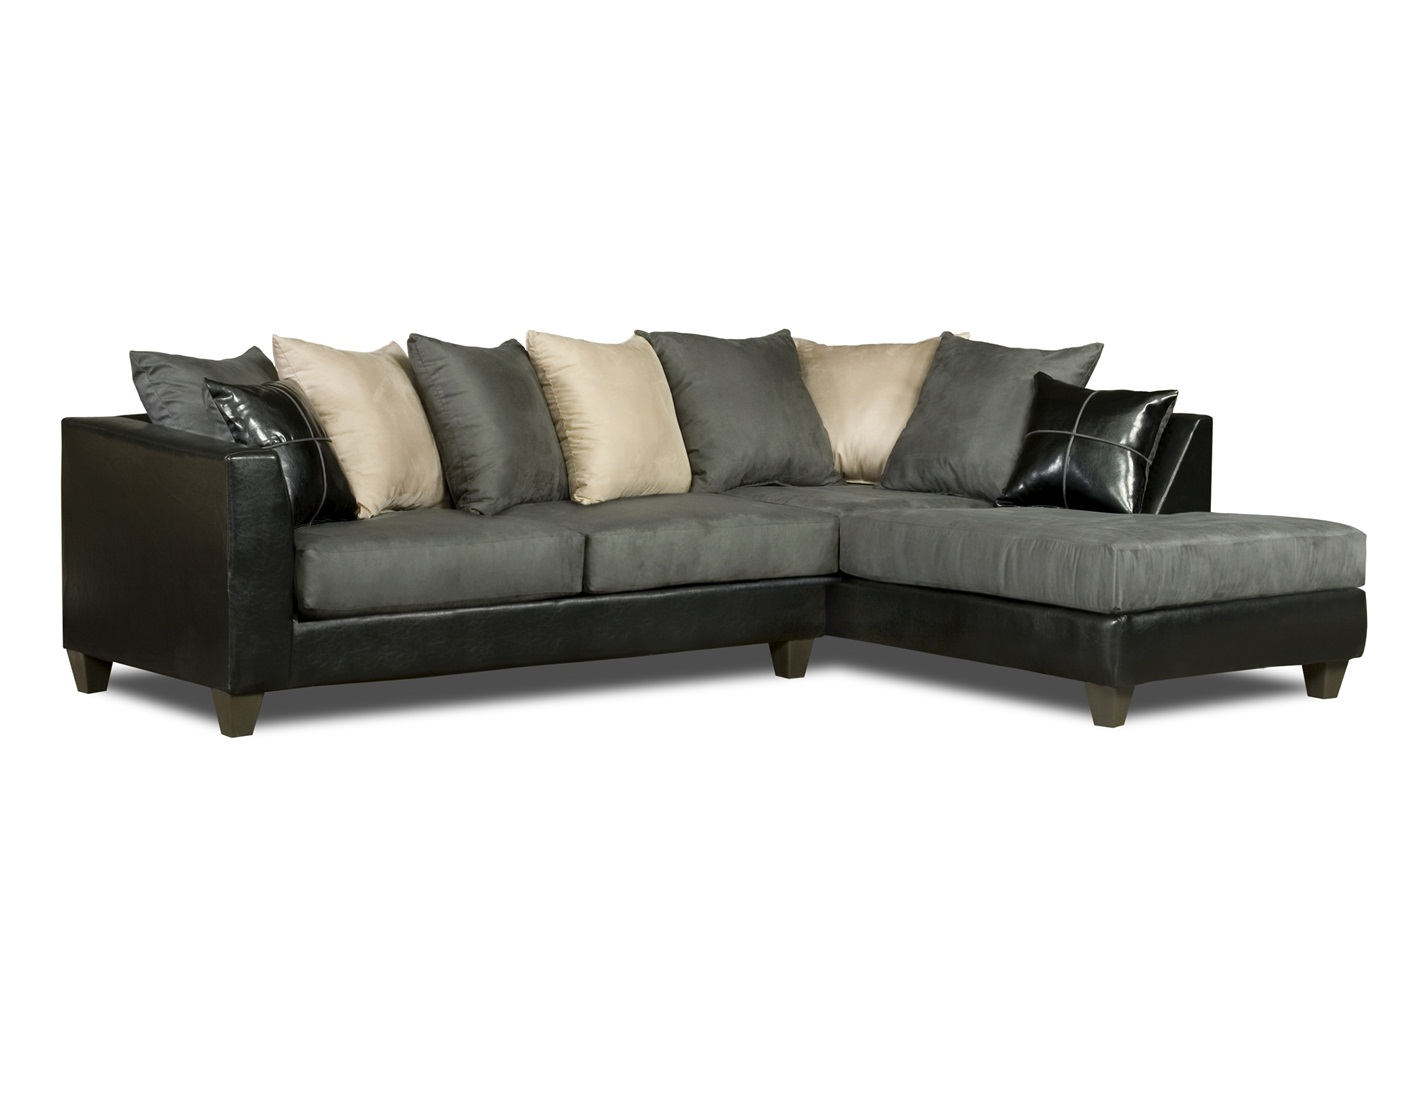 dark grey microfiber sectional sofa with chaise On black and grey sofa